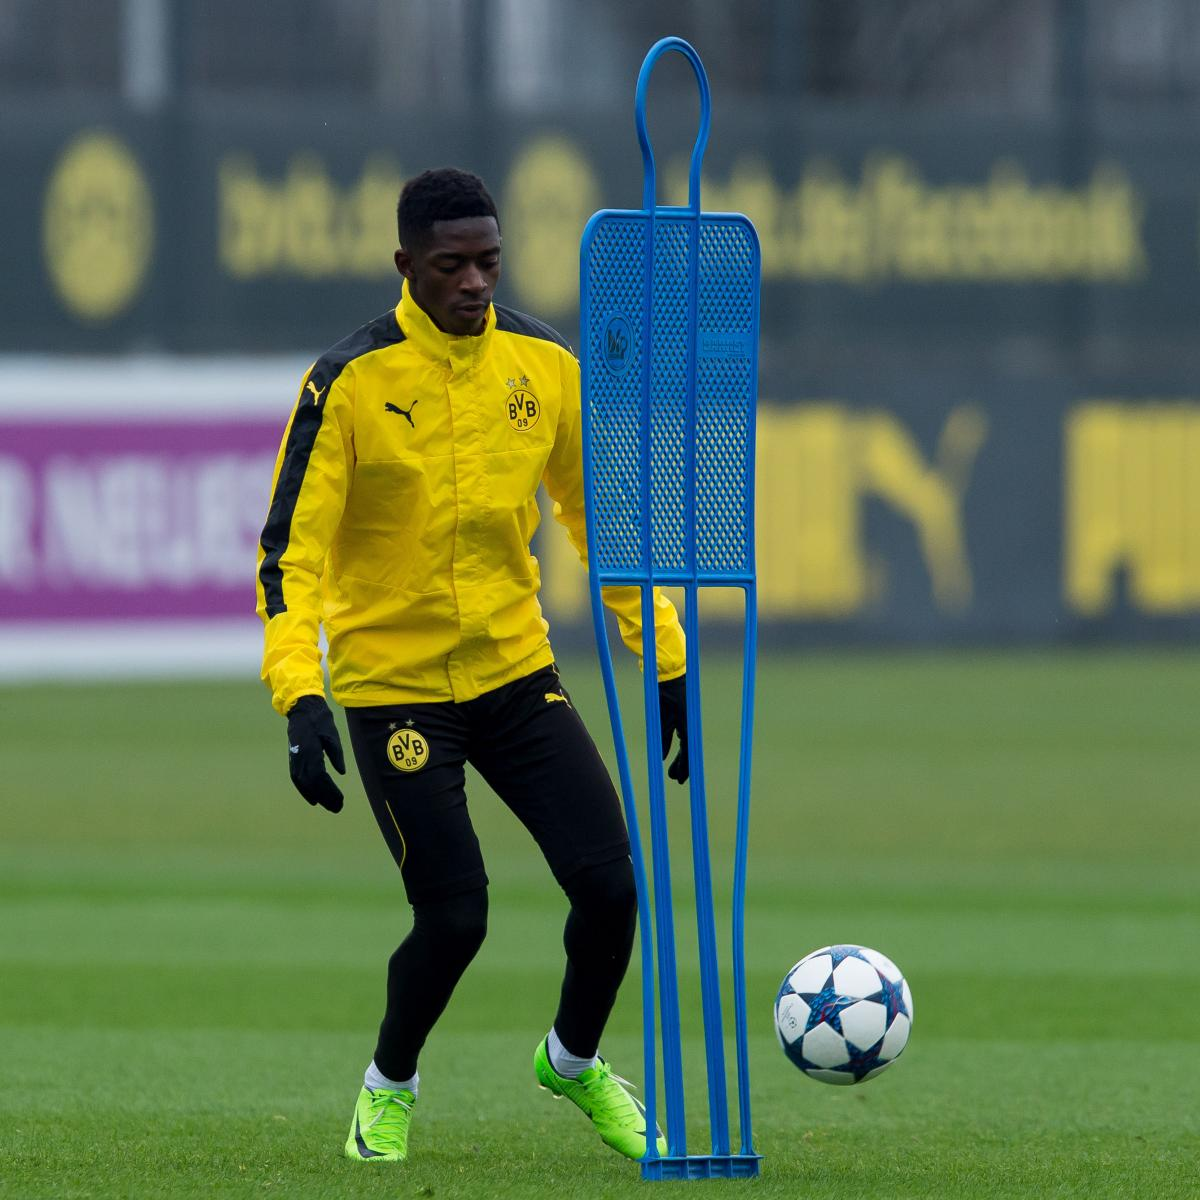 Liverpool Fc Transfer Gossip Reds Close In On Barcelona: Liverpool Transfer News: Latest Rumours On Ousmane Dembele